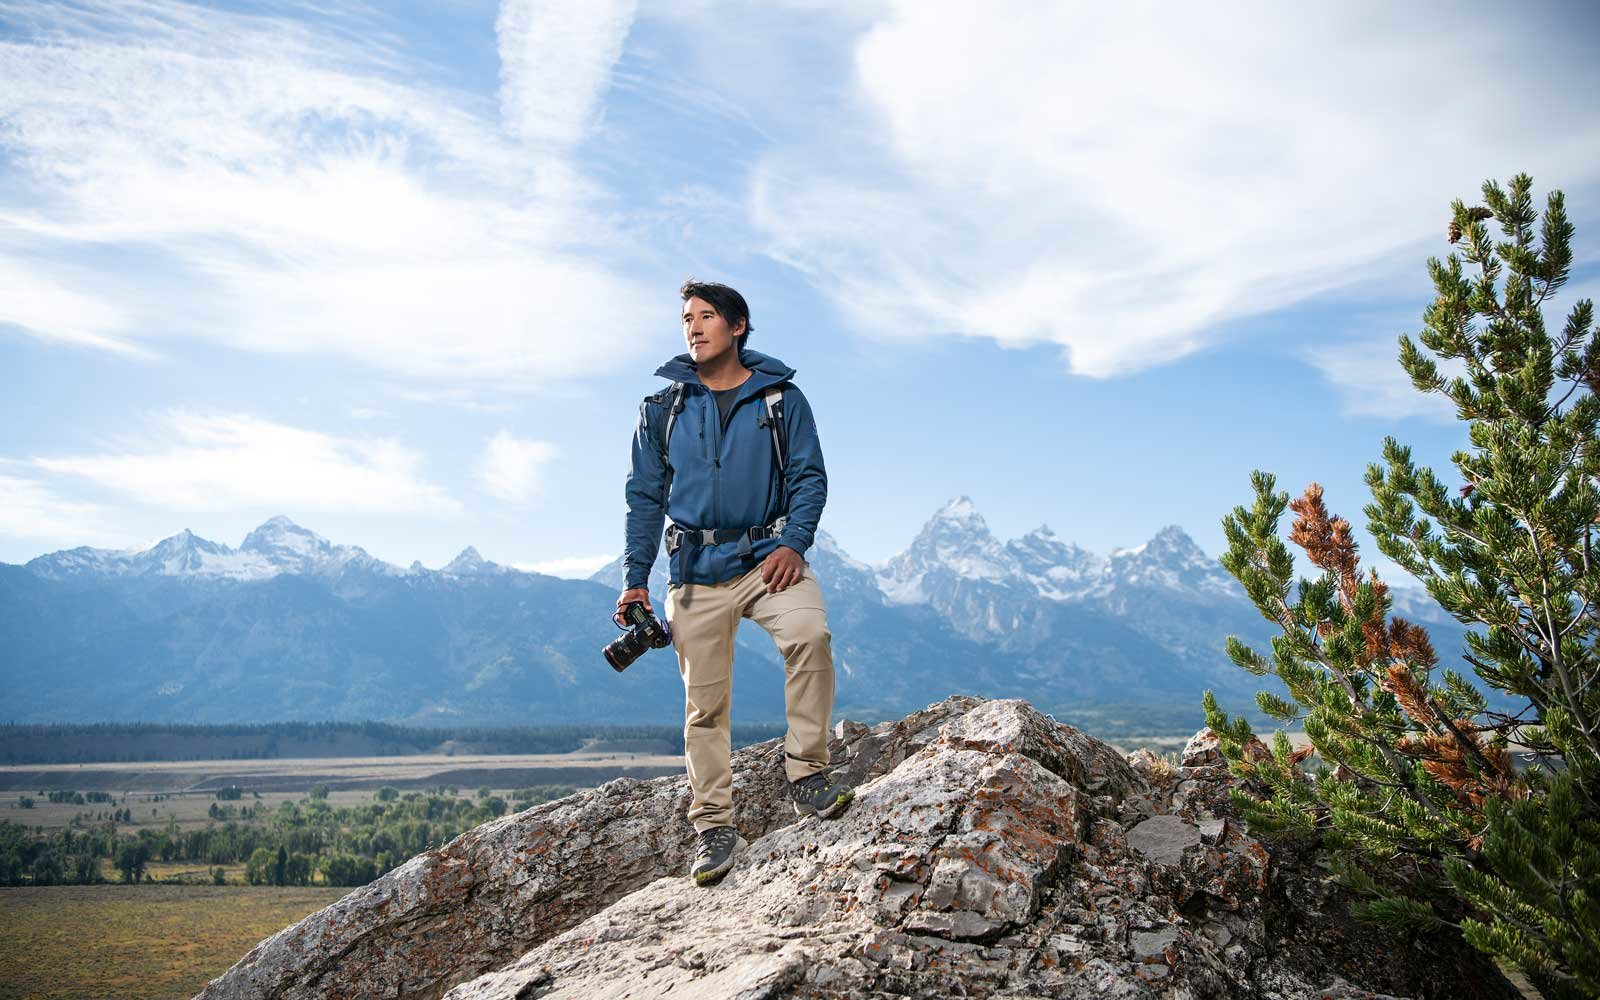 Jimmy Chin shares his tips for capturing magnificent adventure photographs.